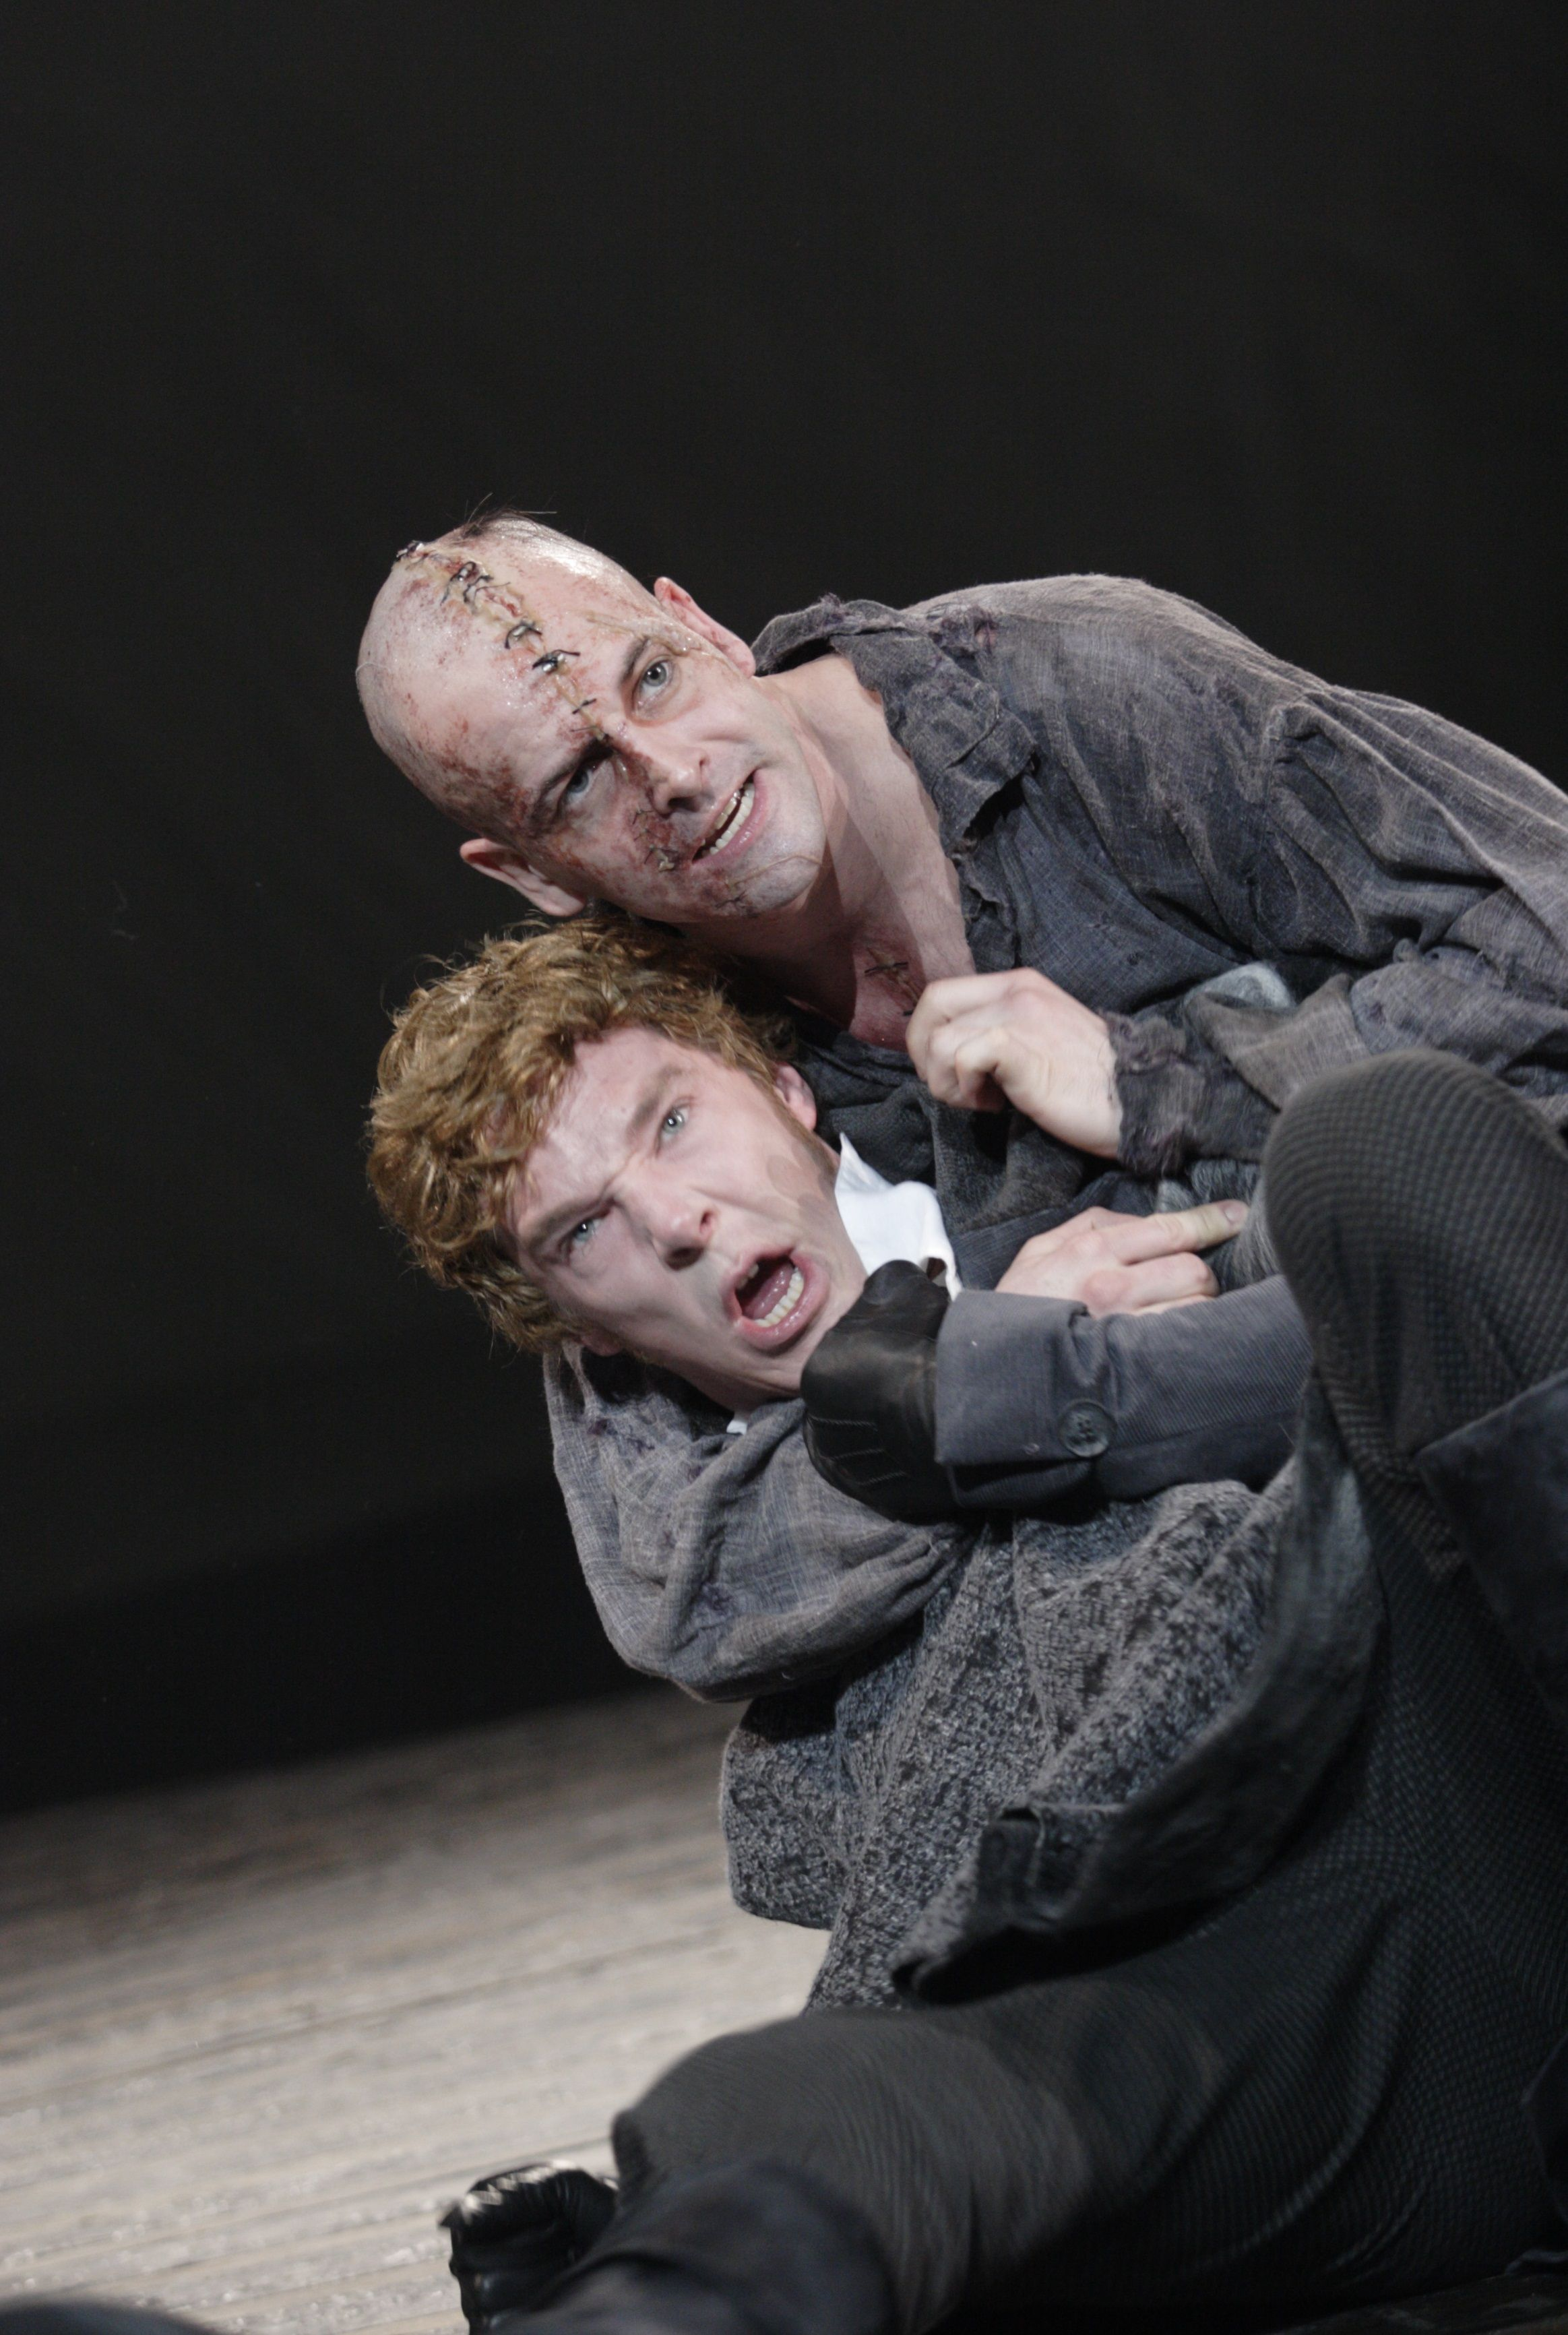 Nt Live Frankenstein Friday October 31 2014 At 7 00 P M And 10 00 P M Camp Concert Hall Booke Benedict Cumberbatch National Theatre Live Frankenstein